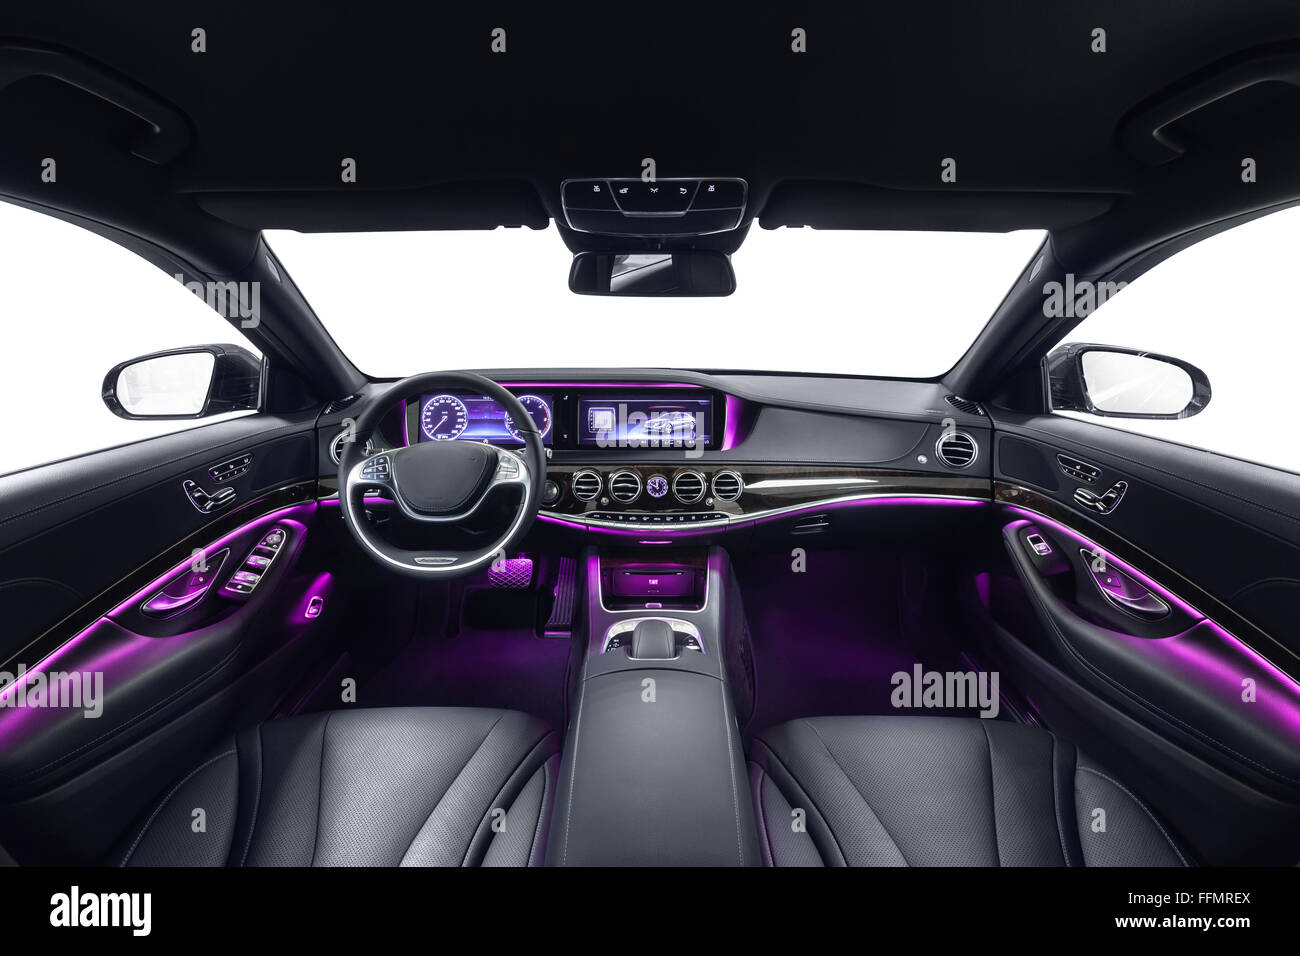 Car interior luxury black seats with violet ambient light for Dash designs car interior shop